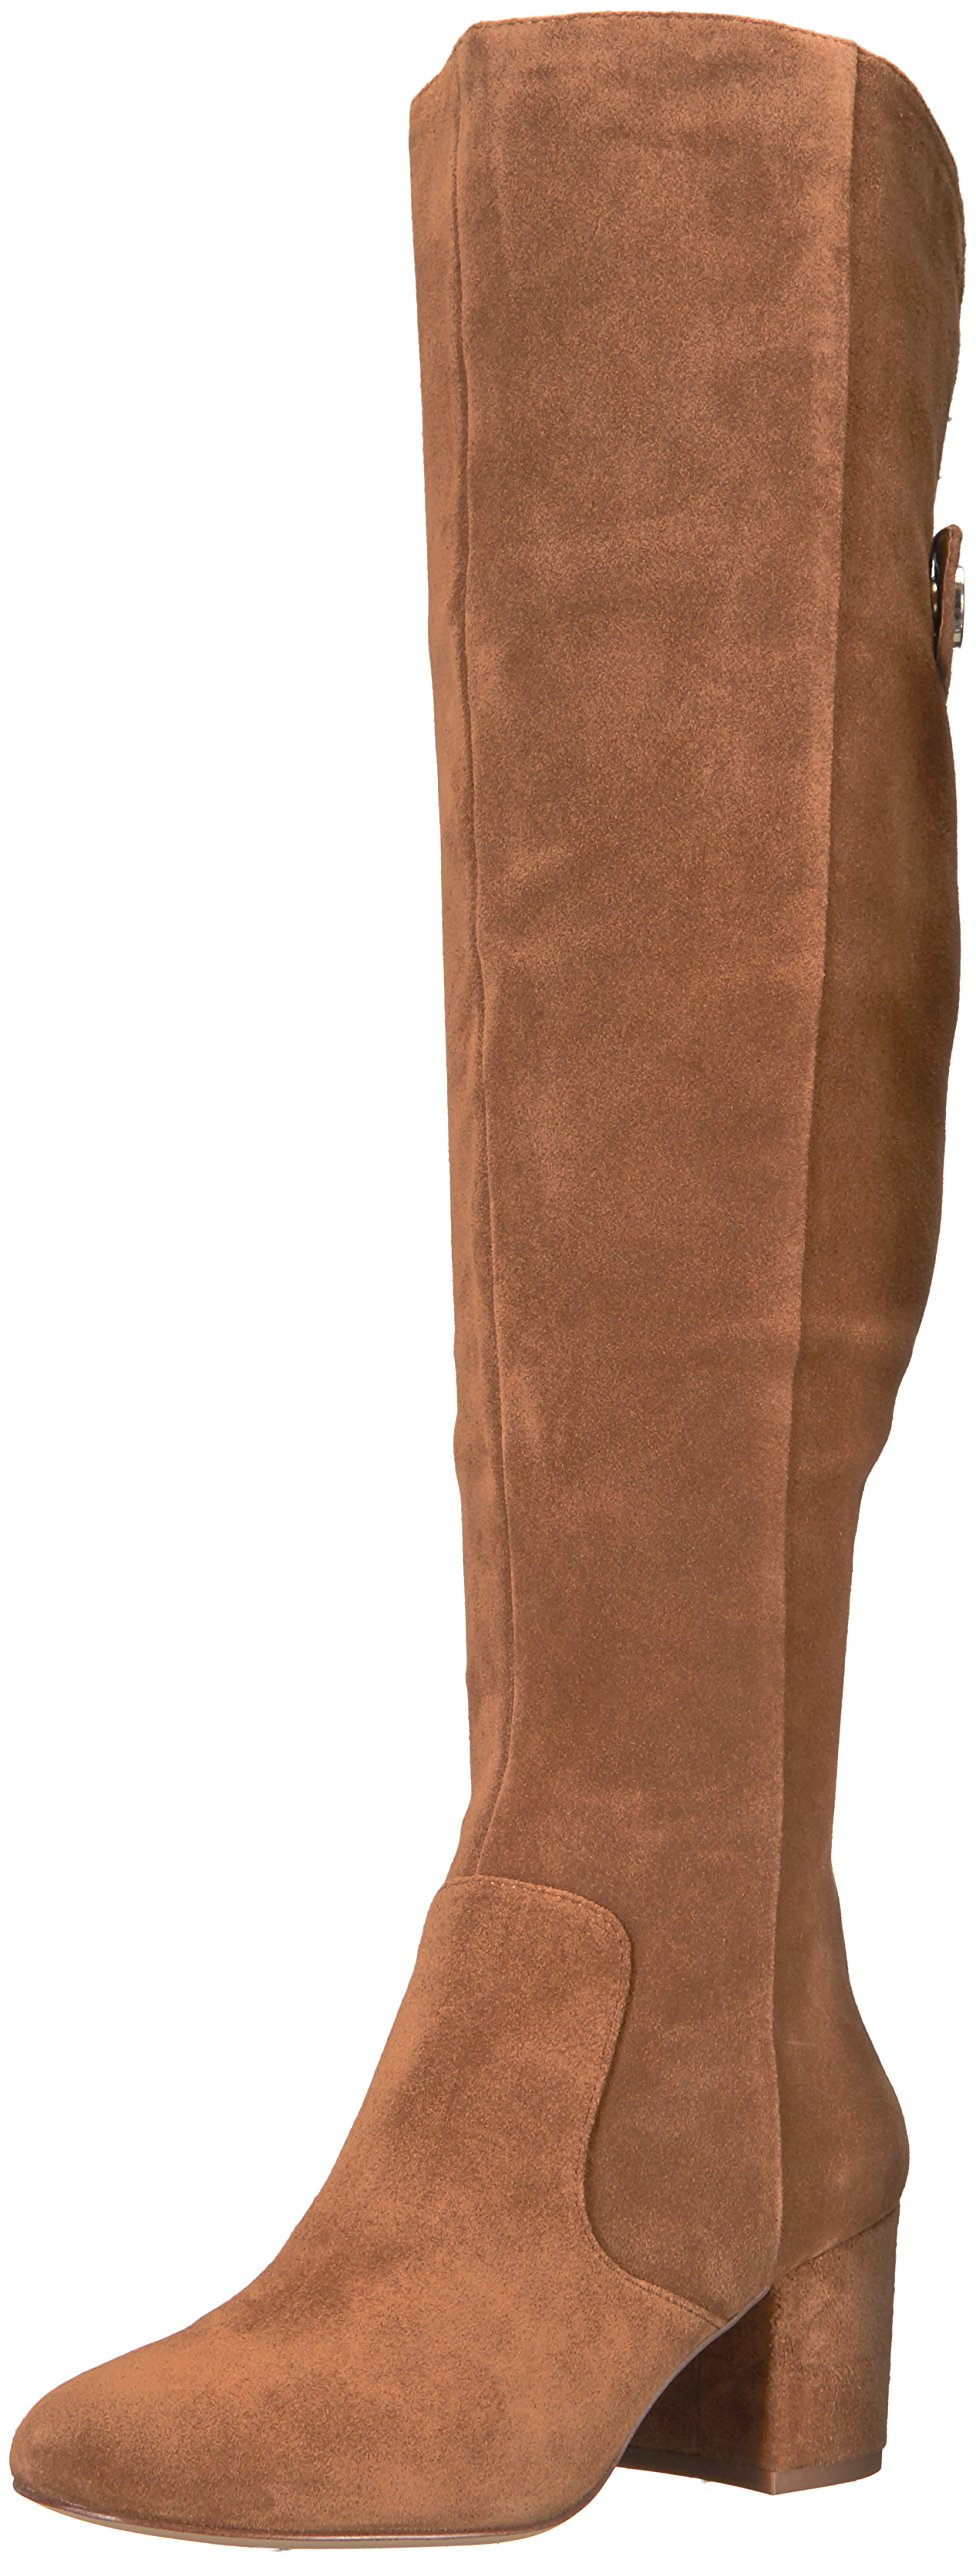 Nine West Women's Queddy Suede Over the Knee Boot, Brown, 9 Medium US